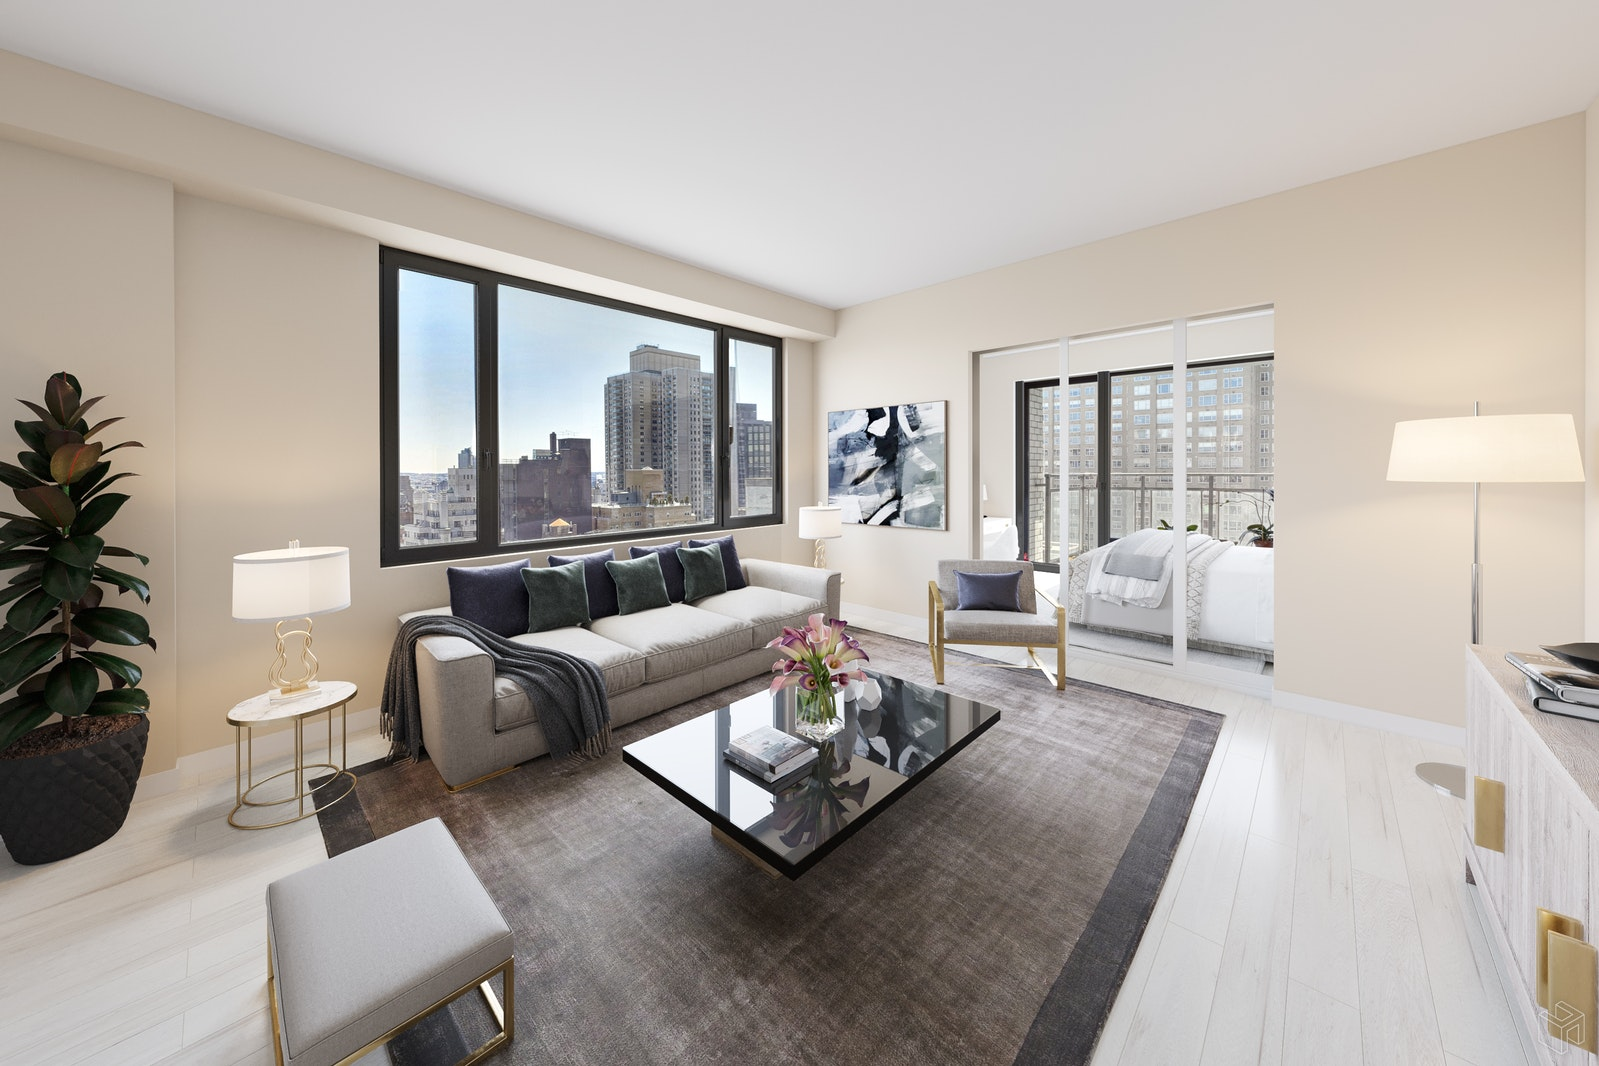 303 East 57th Street 23b, Midtown East, NYC, 10022, $725,000, Property For Sale, Halstead Real Estate, Photo 1